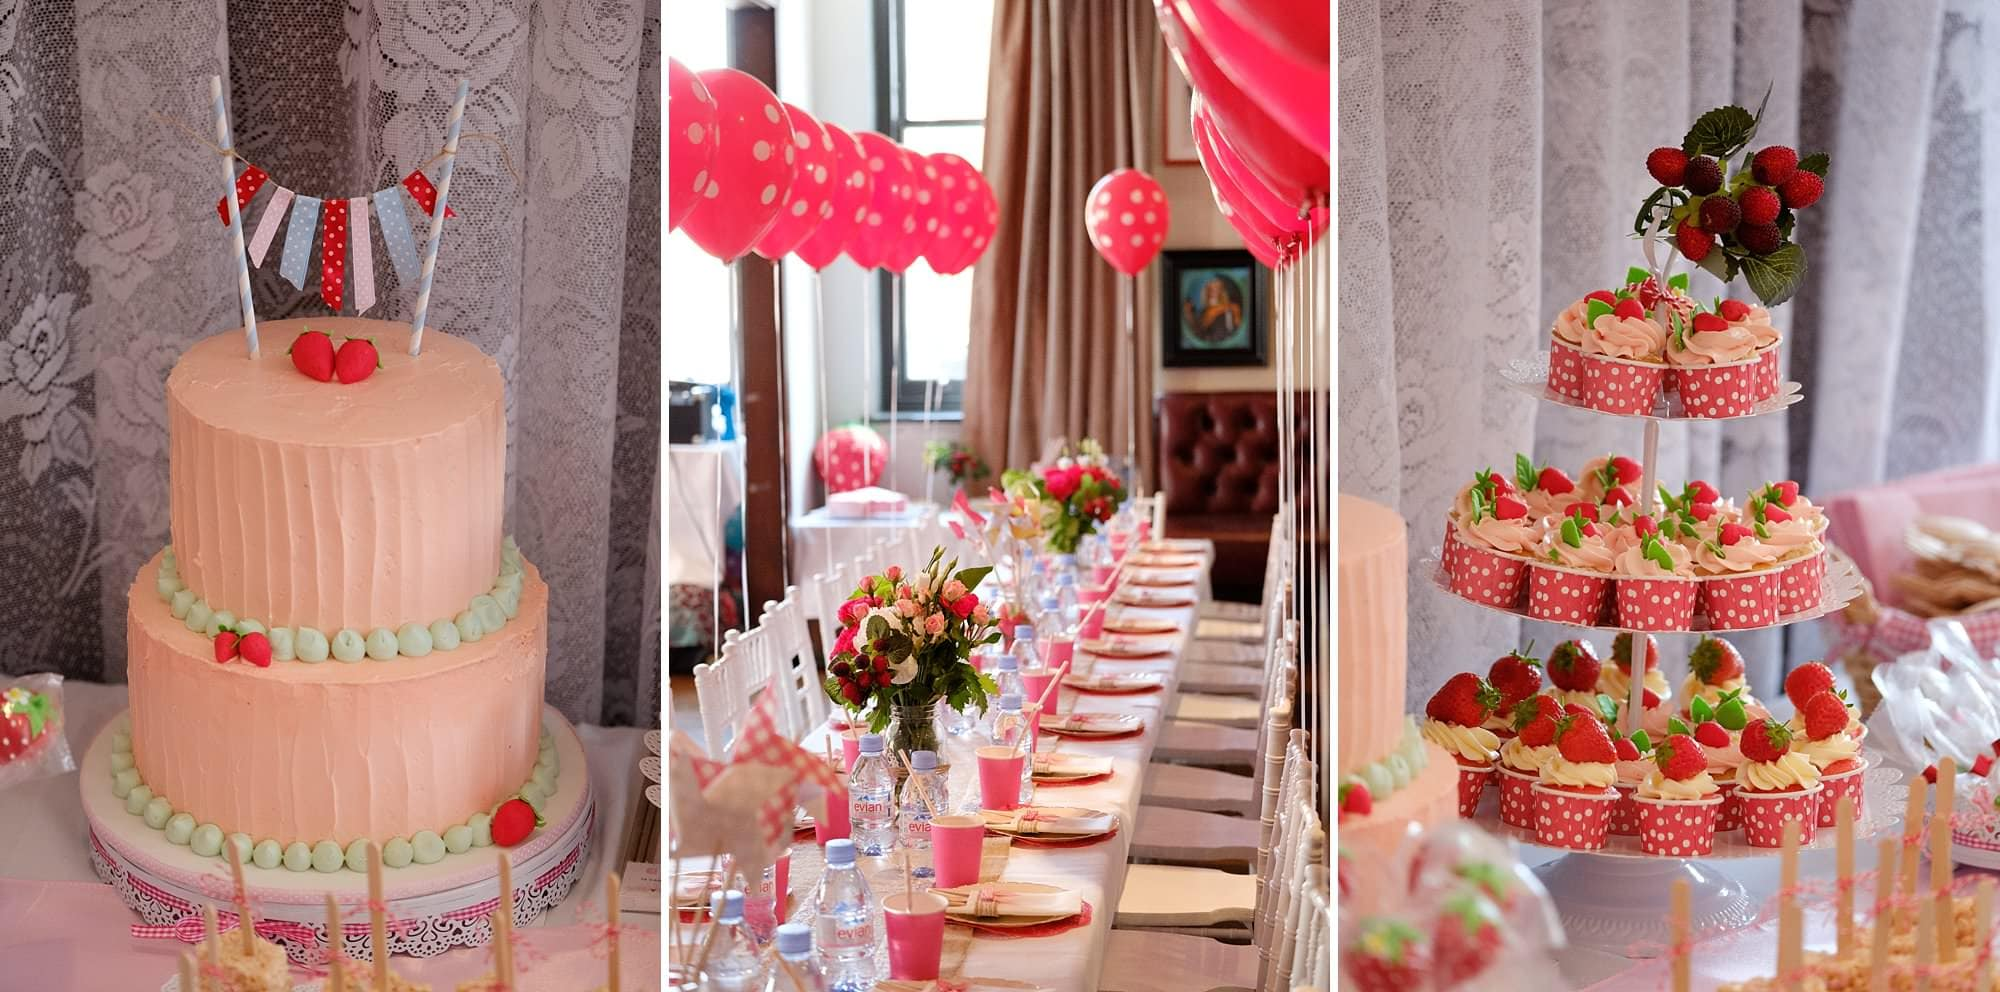 childrens party photographer chelsea beaufort house 003 - A 3rd Birthday Party in Beaufort House Chelsea